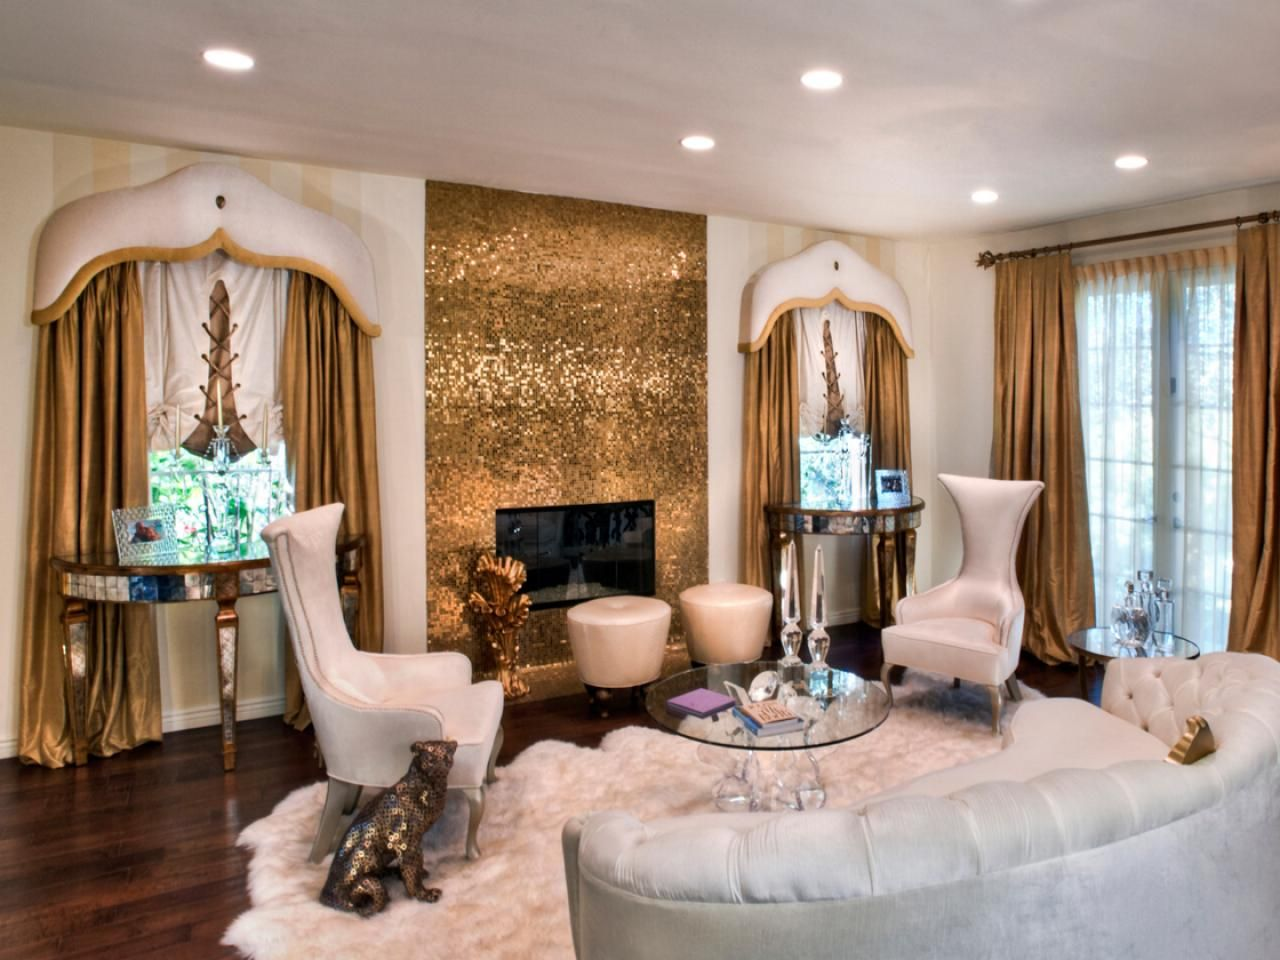 High Quality Gold Accents Make The Eyes Jump All Over This Living Room. The Fireplace  Shimmers And